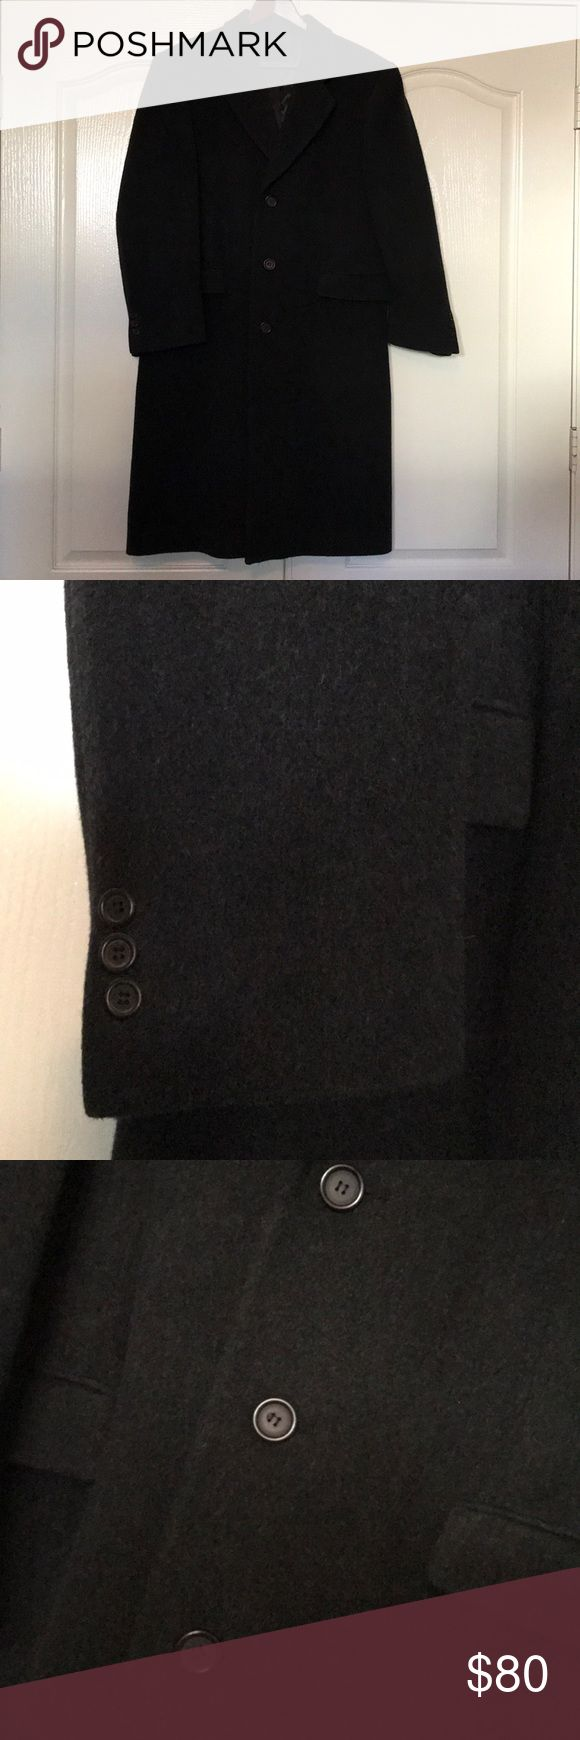 """Men's Grey Wool/Cashmere blend winter coat Excellent condition, warm, wool/cashmere, charcoal grey coat. Fits 5'8"""" medium build man (no size tag).  Interior pockets for safekeeping. nino cerruti Jackets & Coats Trench Coats"""